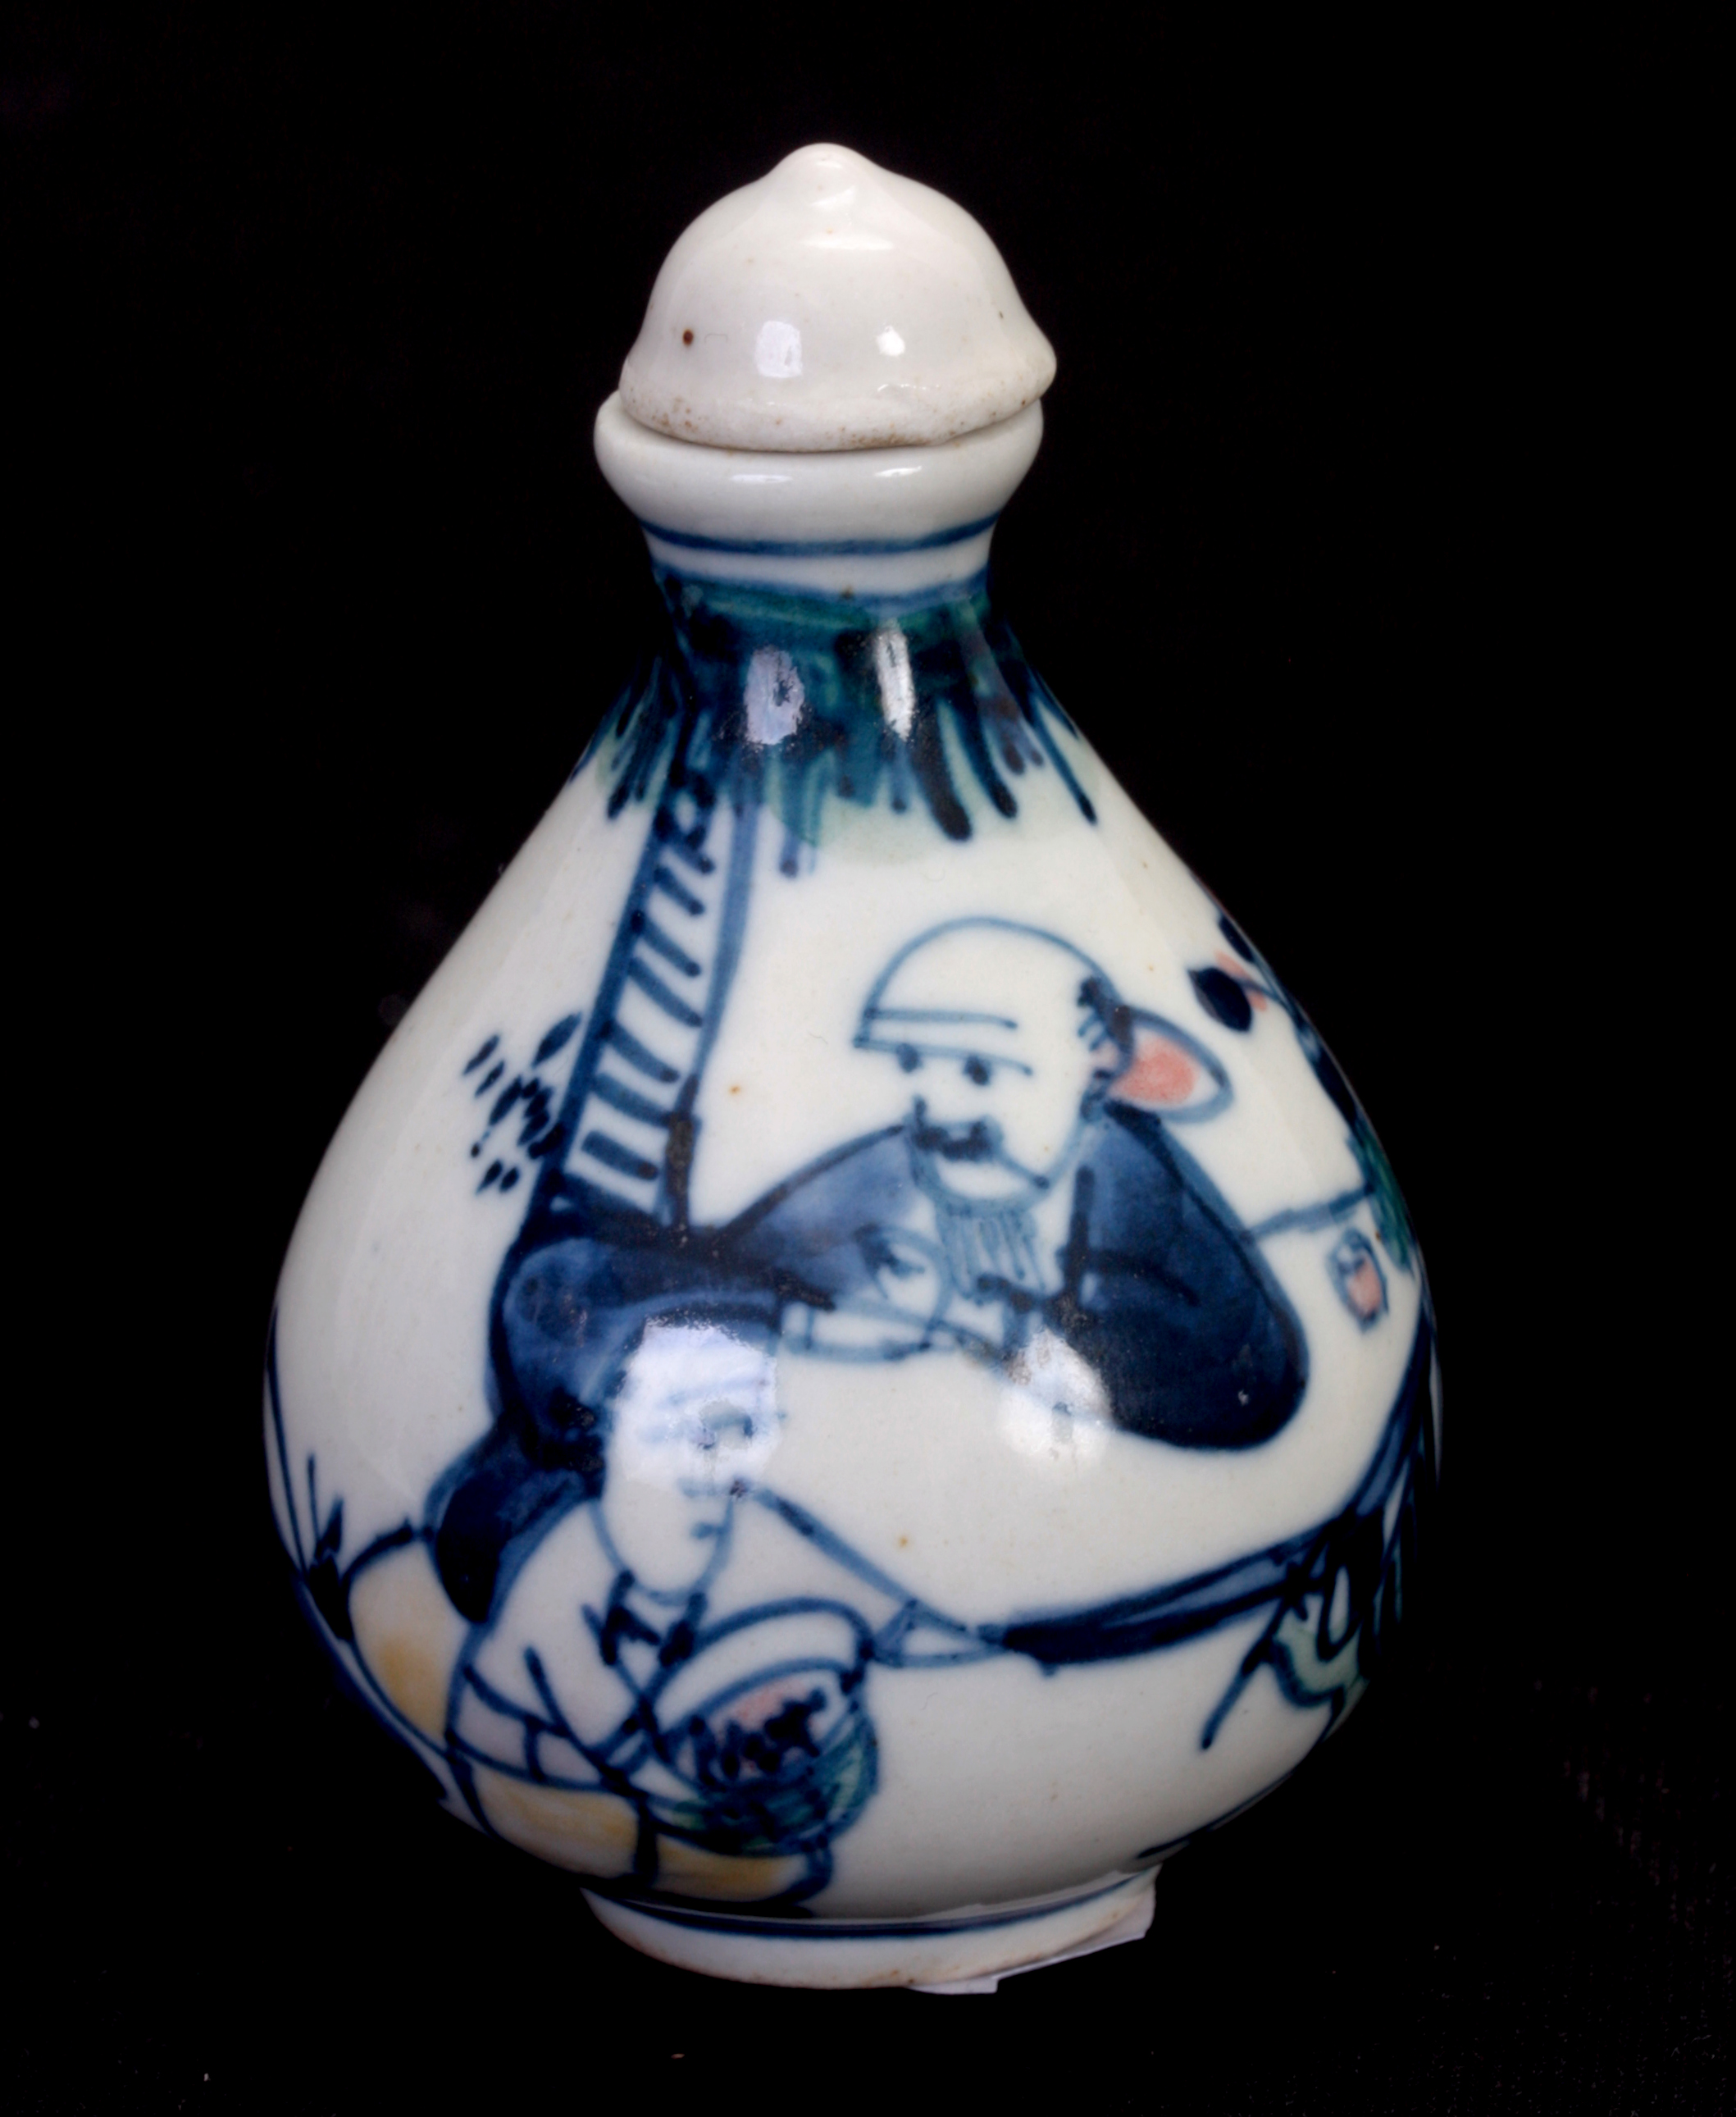 AN EARLY CHINESE BULBOUS SHAPED SNUFF BOTTLE decorated with figures in a garden setting - signed